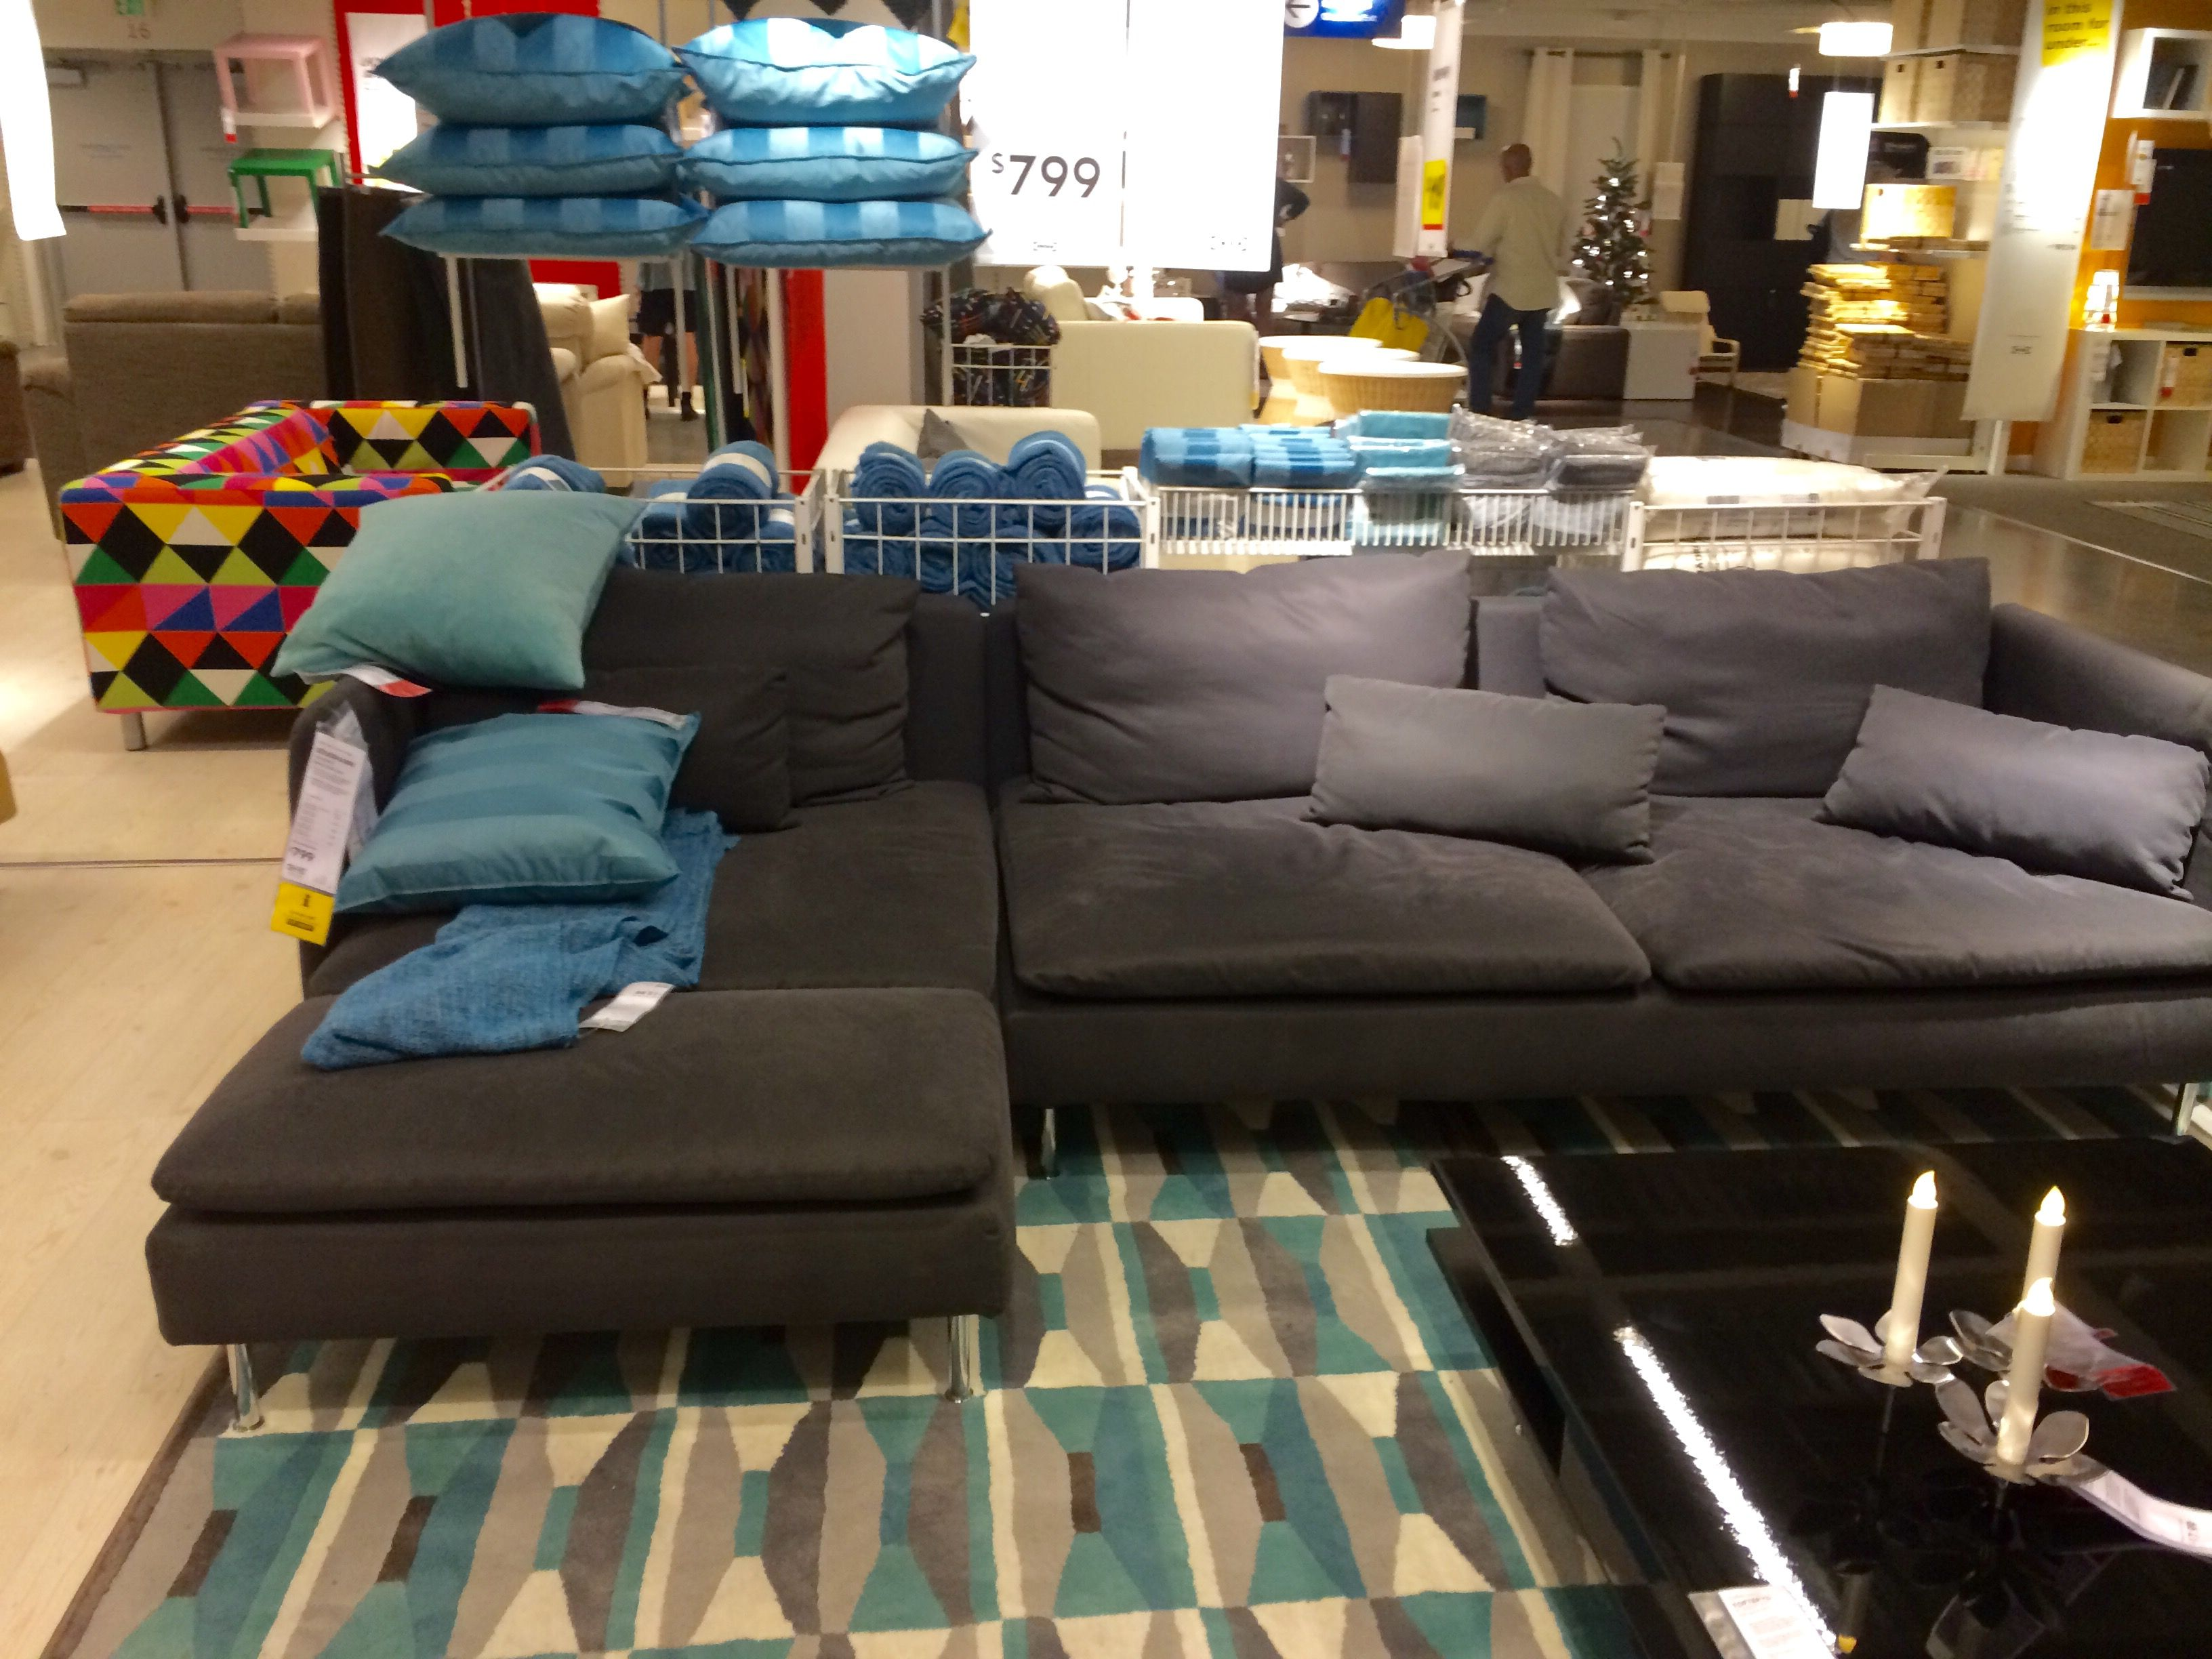 ikea soderhamn sectional sofa sectional sofas. Black Bedroom Furniture Sets. Home Design Ideas